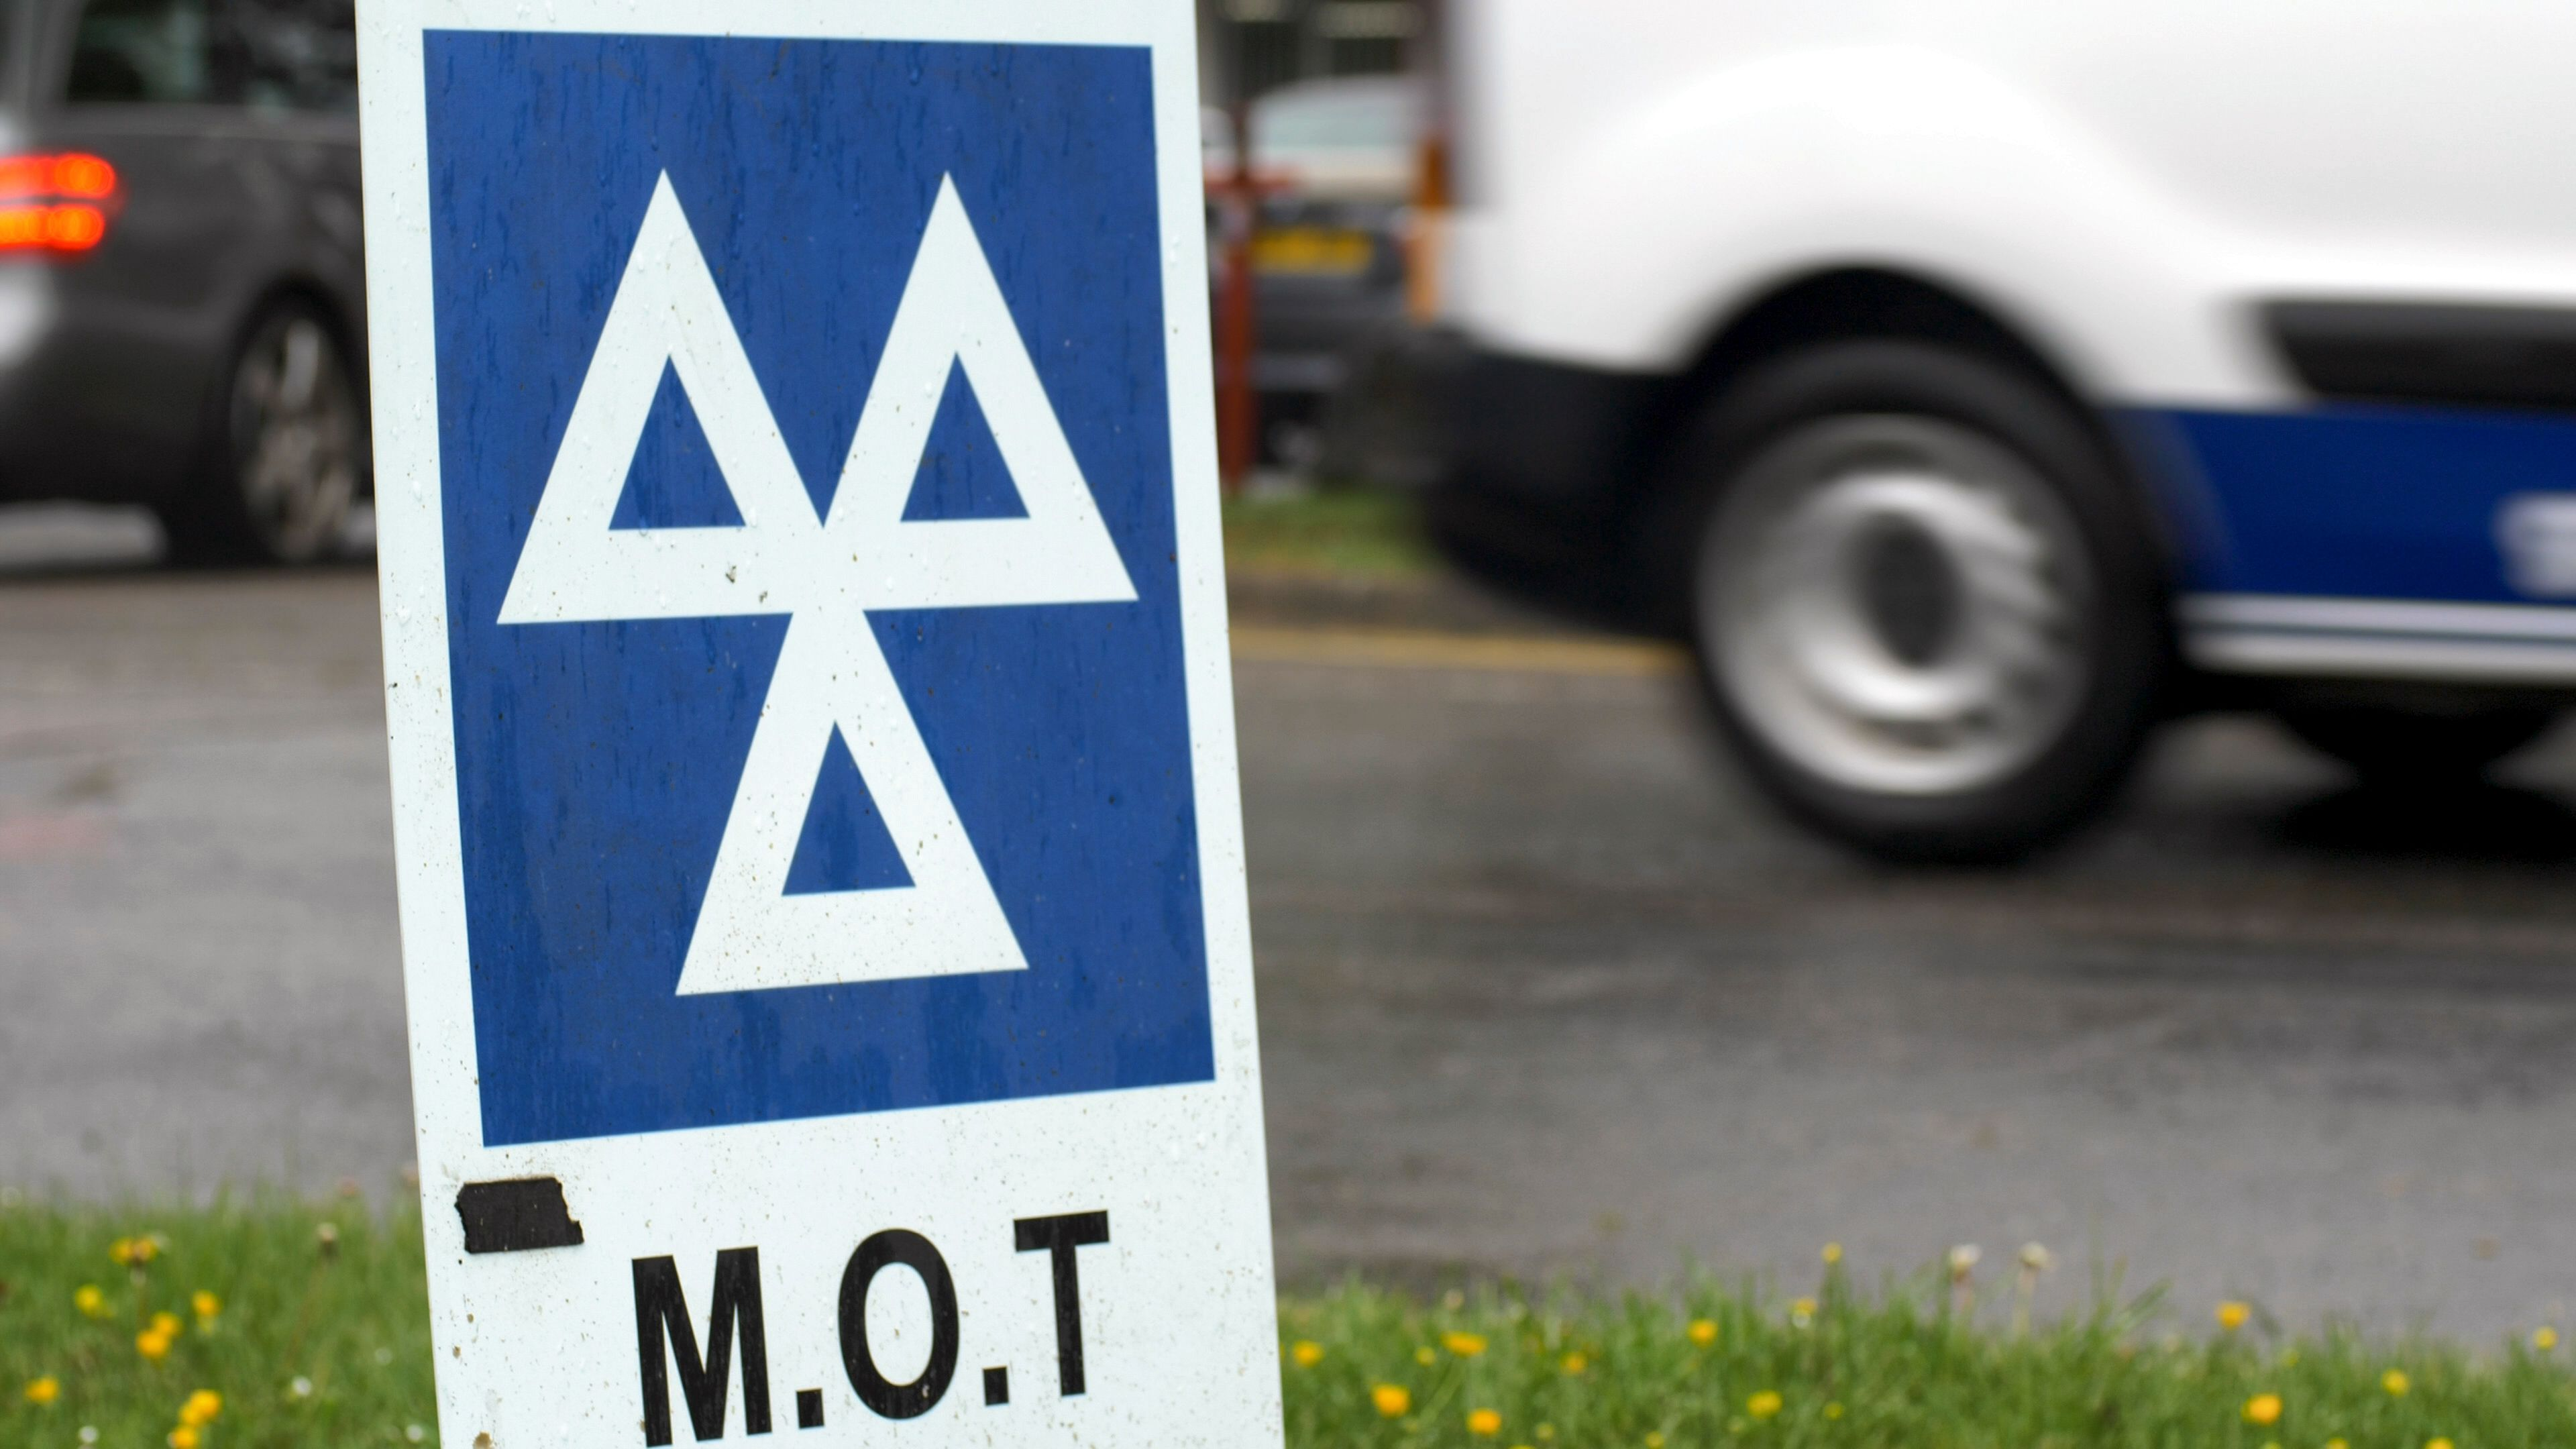 Named and shamed: The UK towns and cities with the worst MOT records